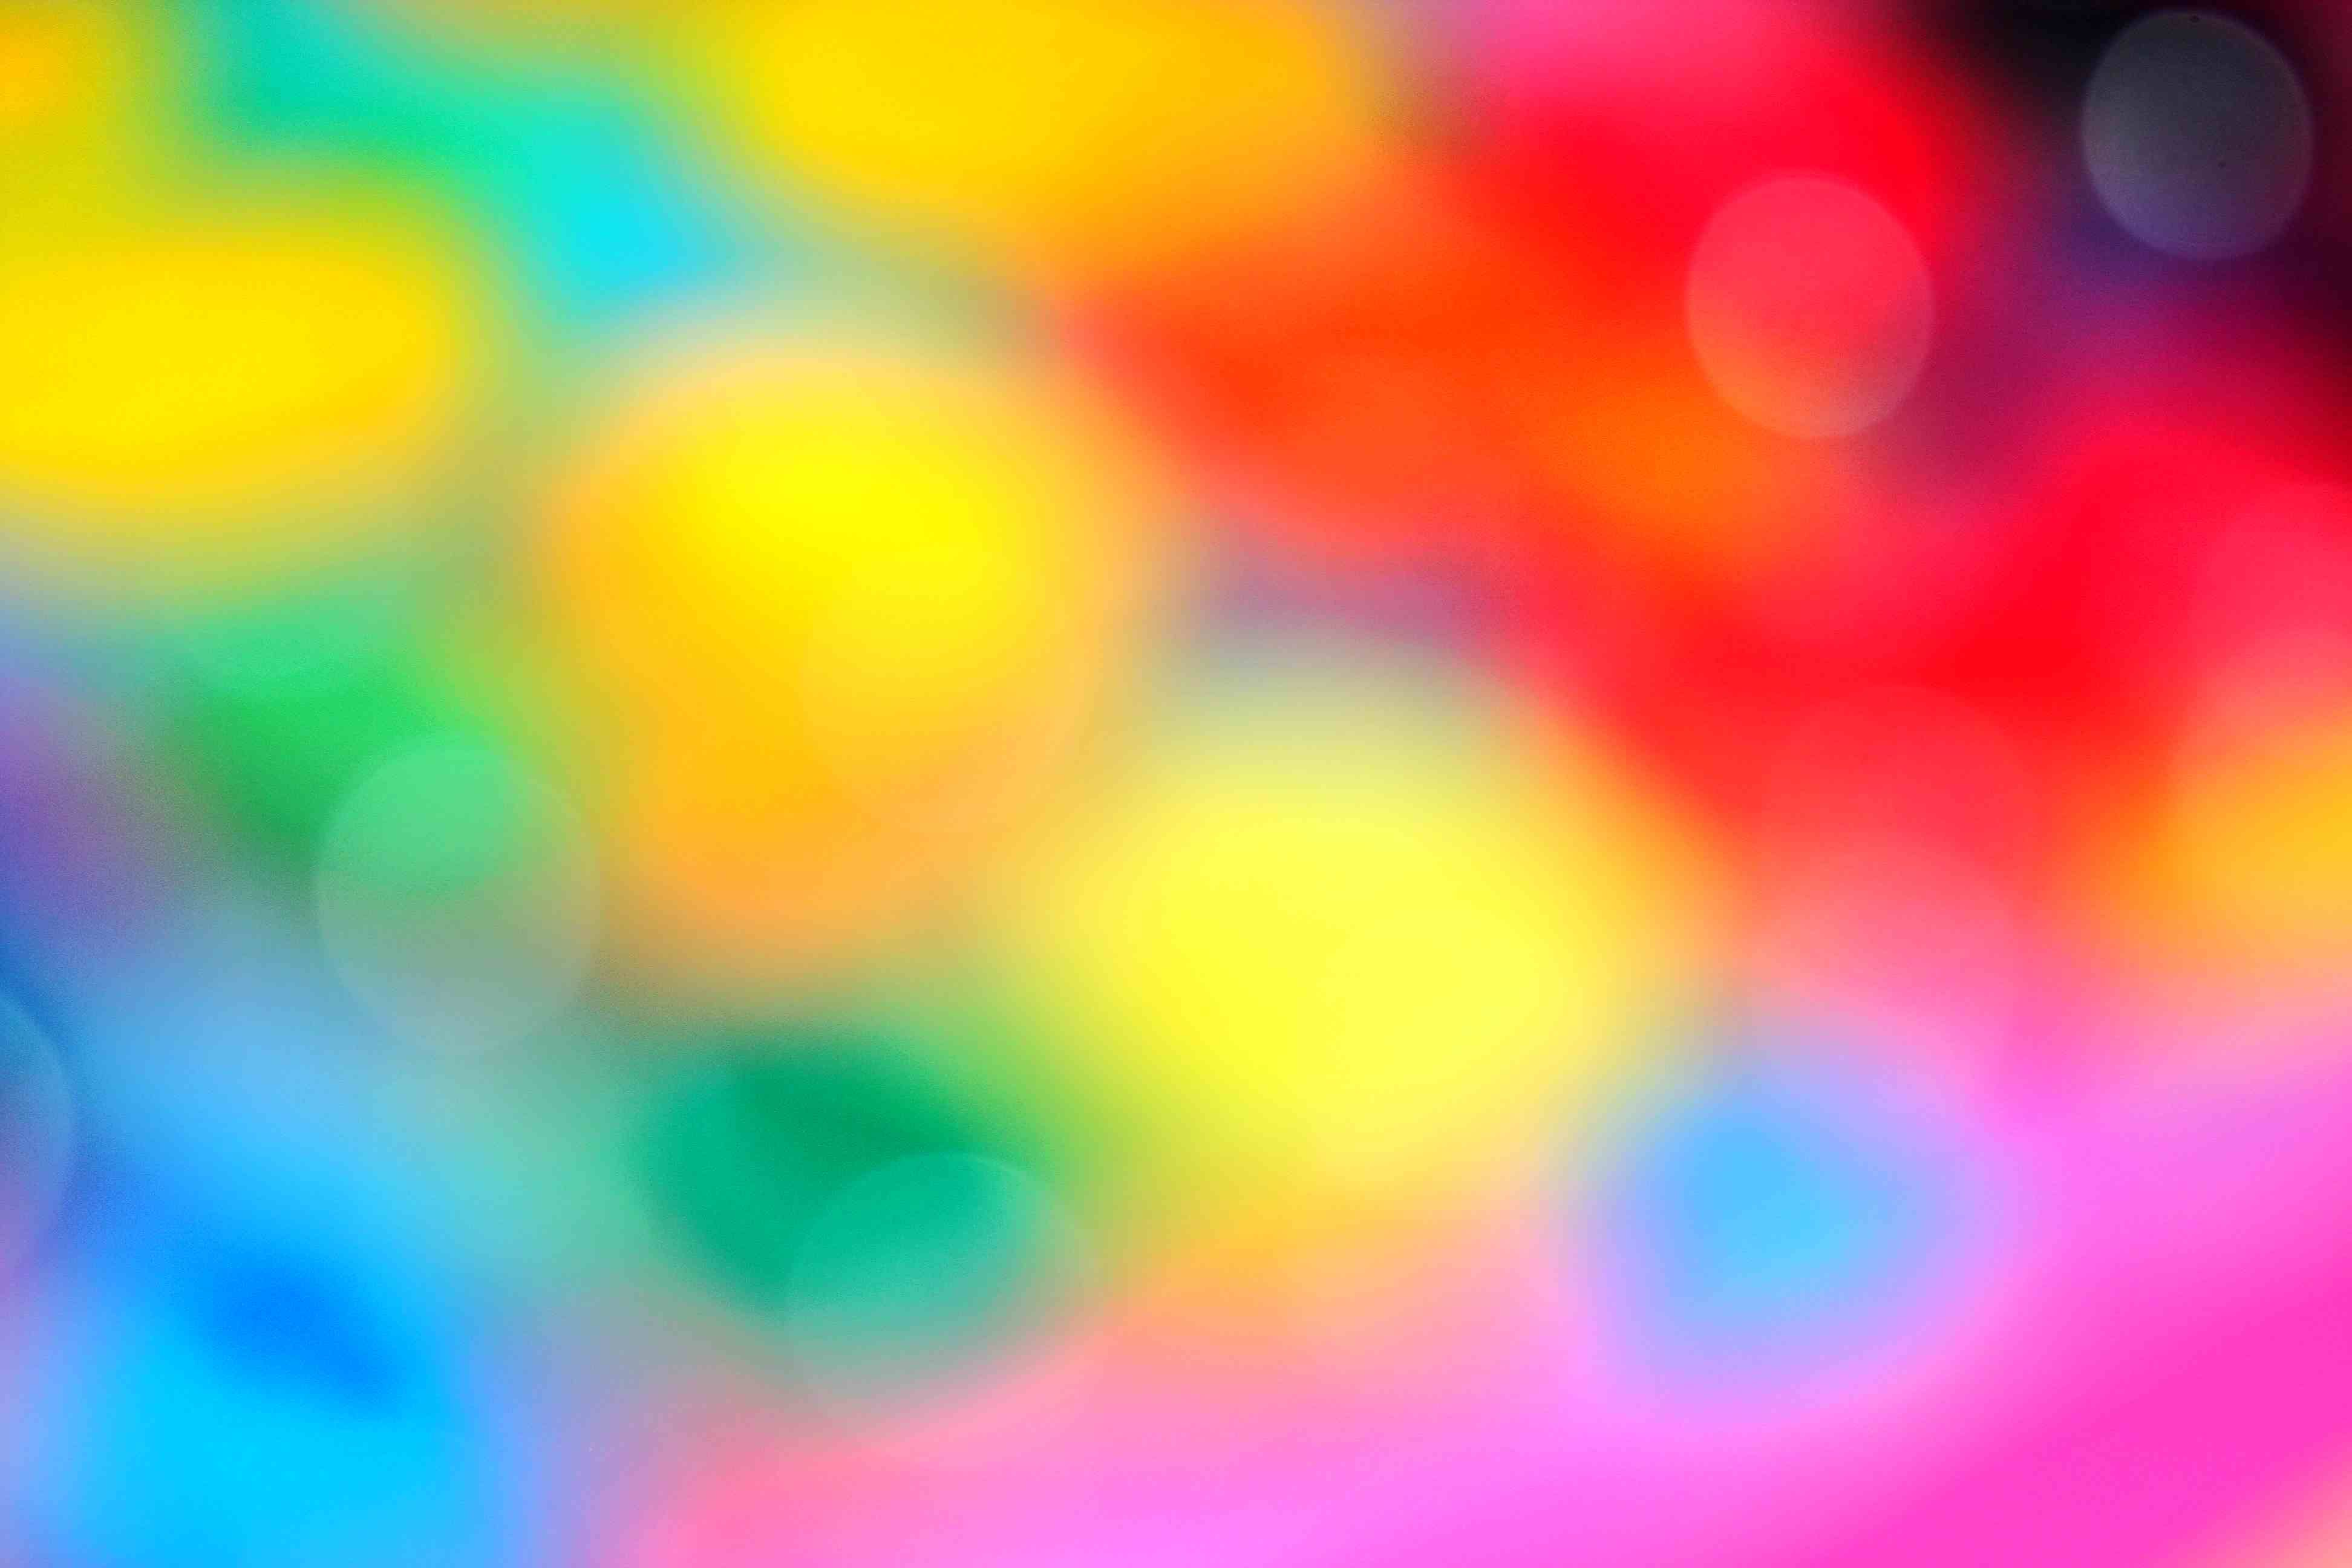 colour - Google Search | Colour | Pinterest | Abstract, Search and ...